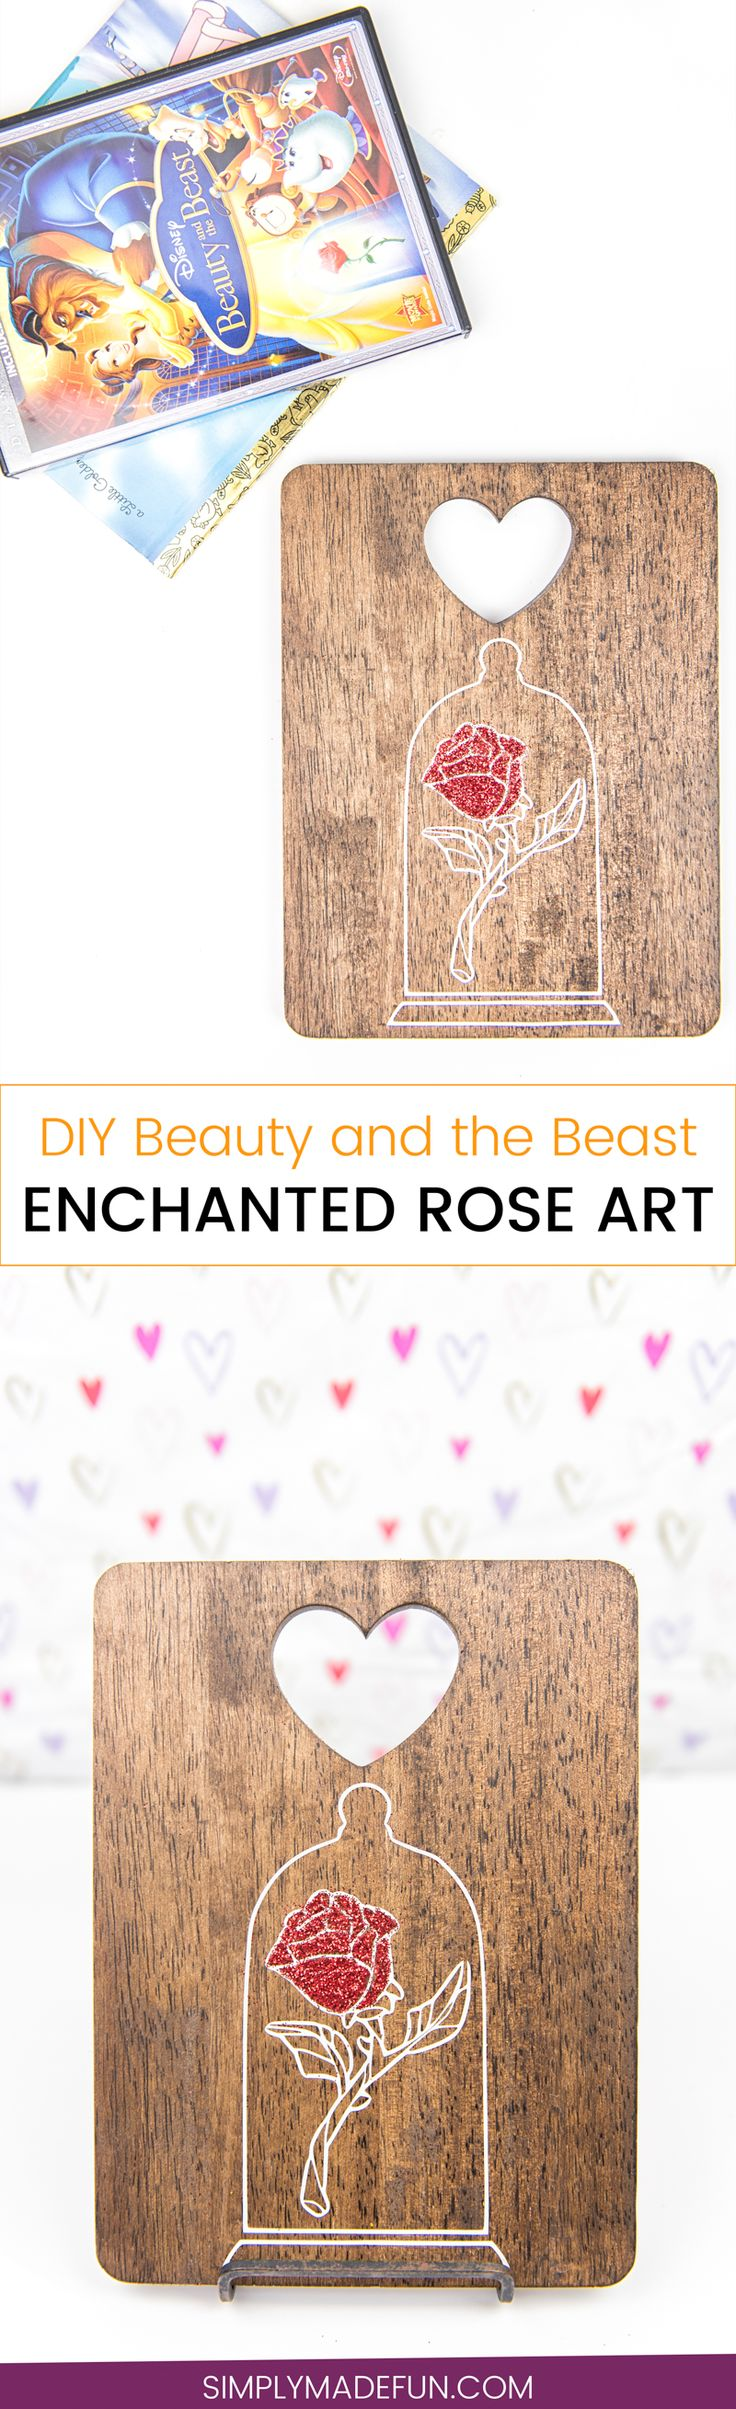 Beauty and the Beast Enchanted Rose Art - I've never been a fan of roses because they always die, but I am a big fan of vinyl roses! They're easy to make with a Silhouette machine, and if you add glitter it makes them look even better.